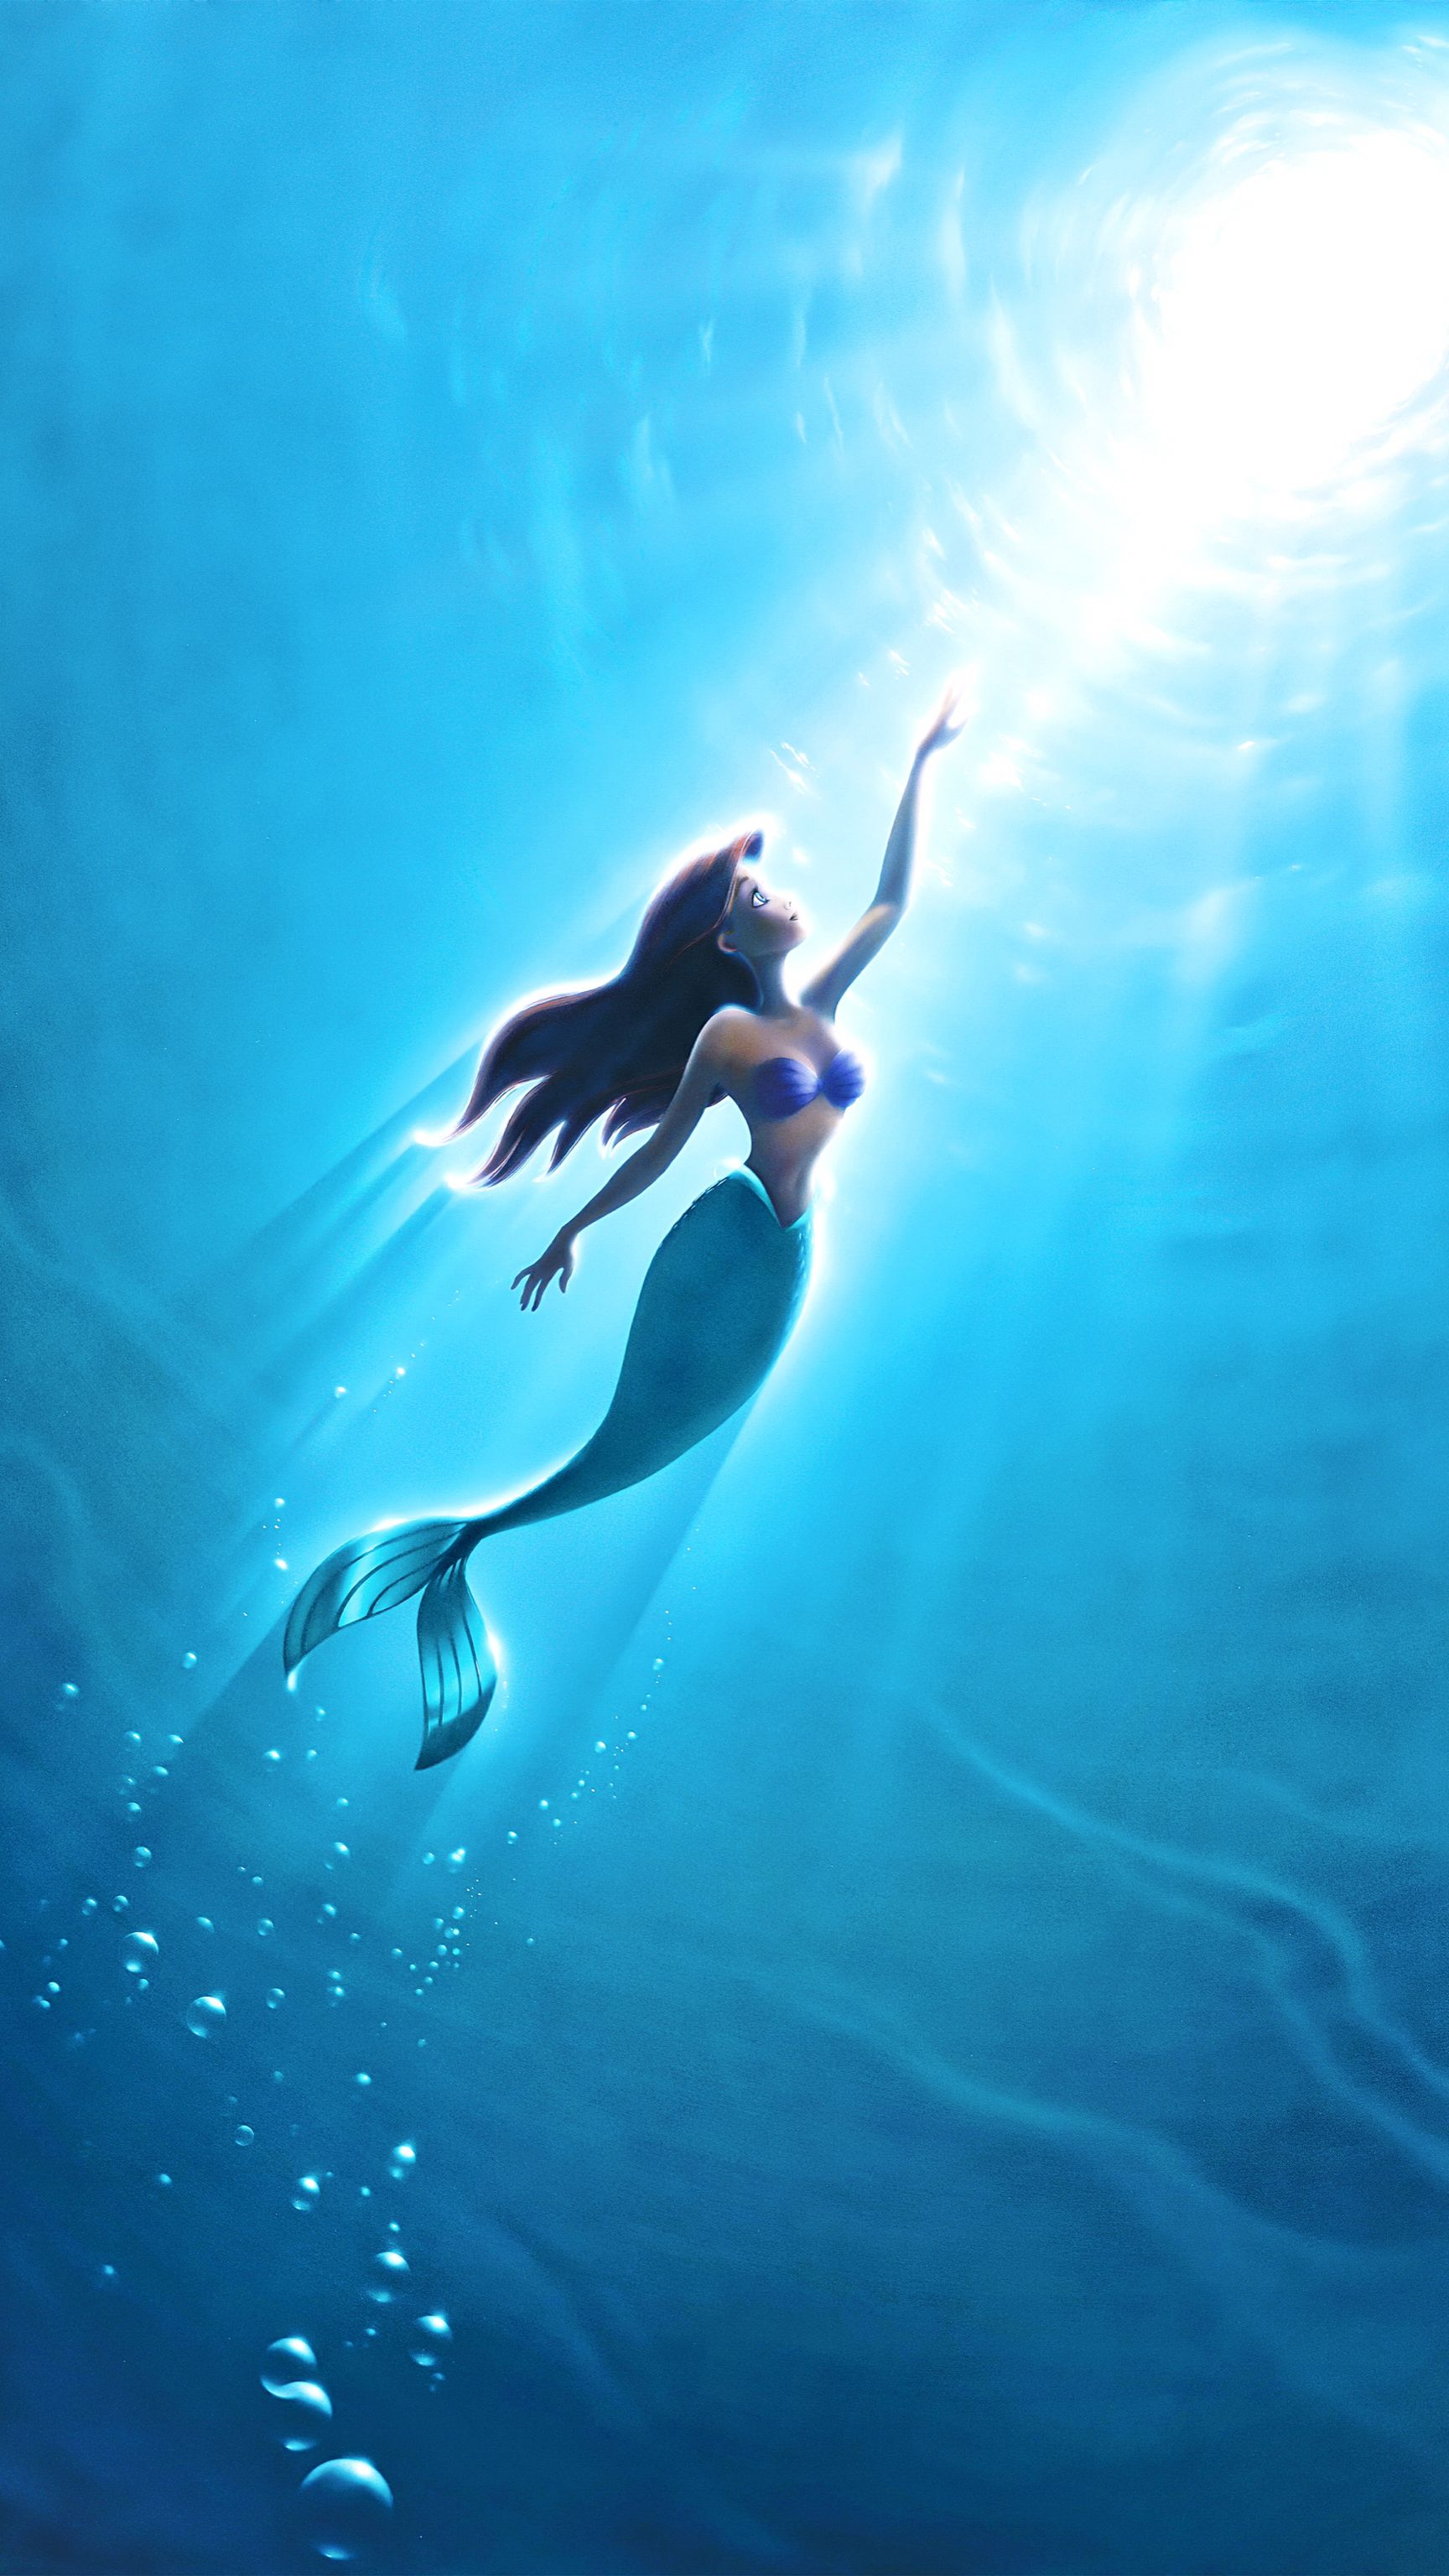 Ariel As A Lockscreen Wallpaper Disney Drawings Mermaid Wallpapers Disney Wallpaper